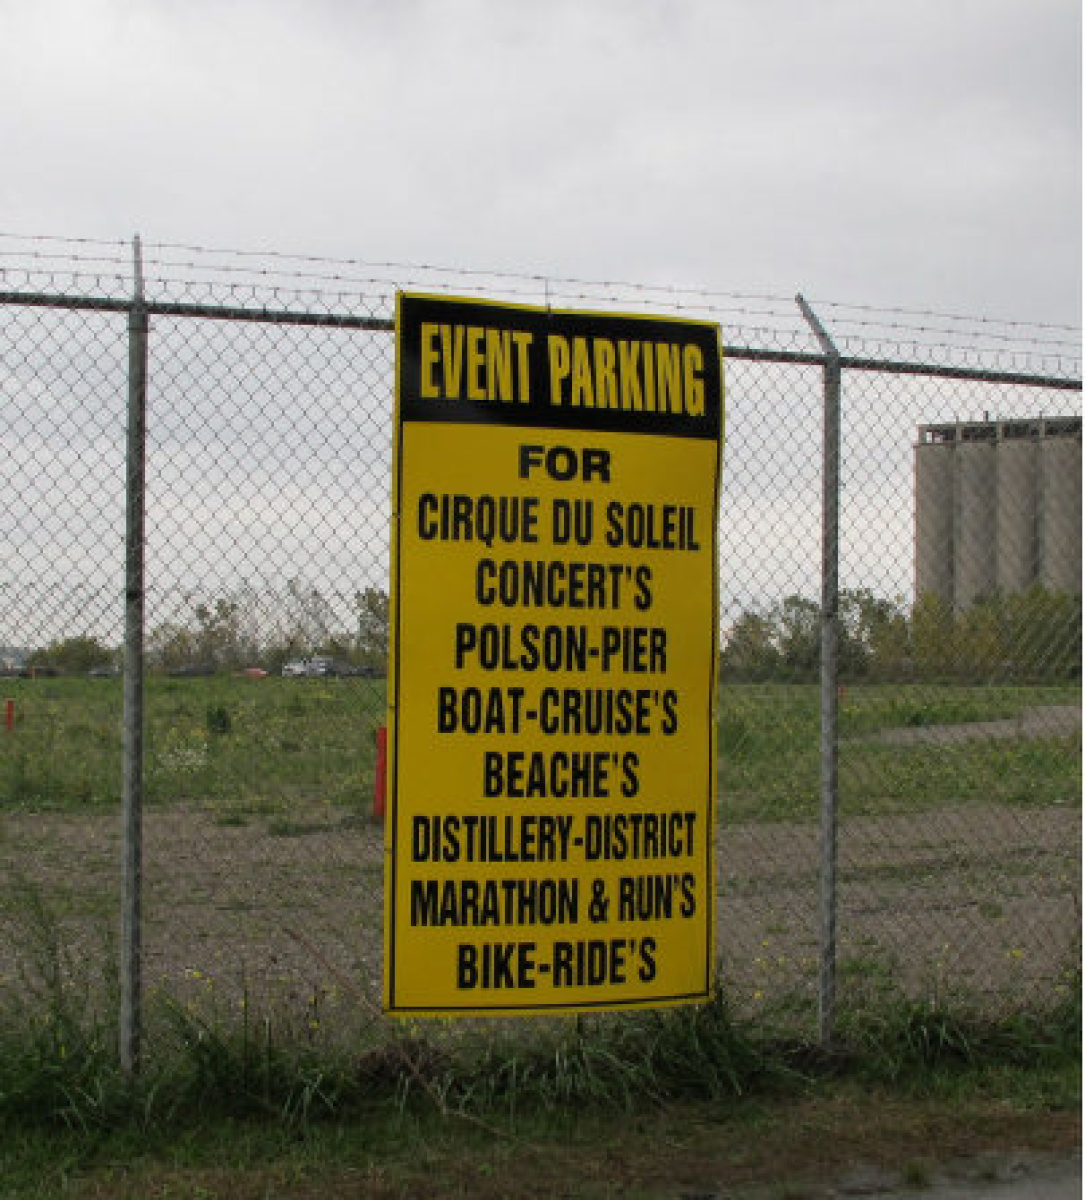 The Fixer Parking Signs A Comedy Of Errors